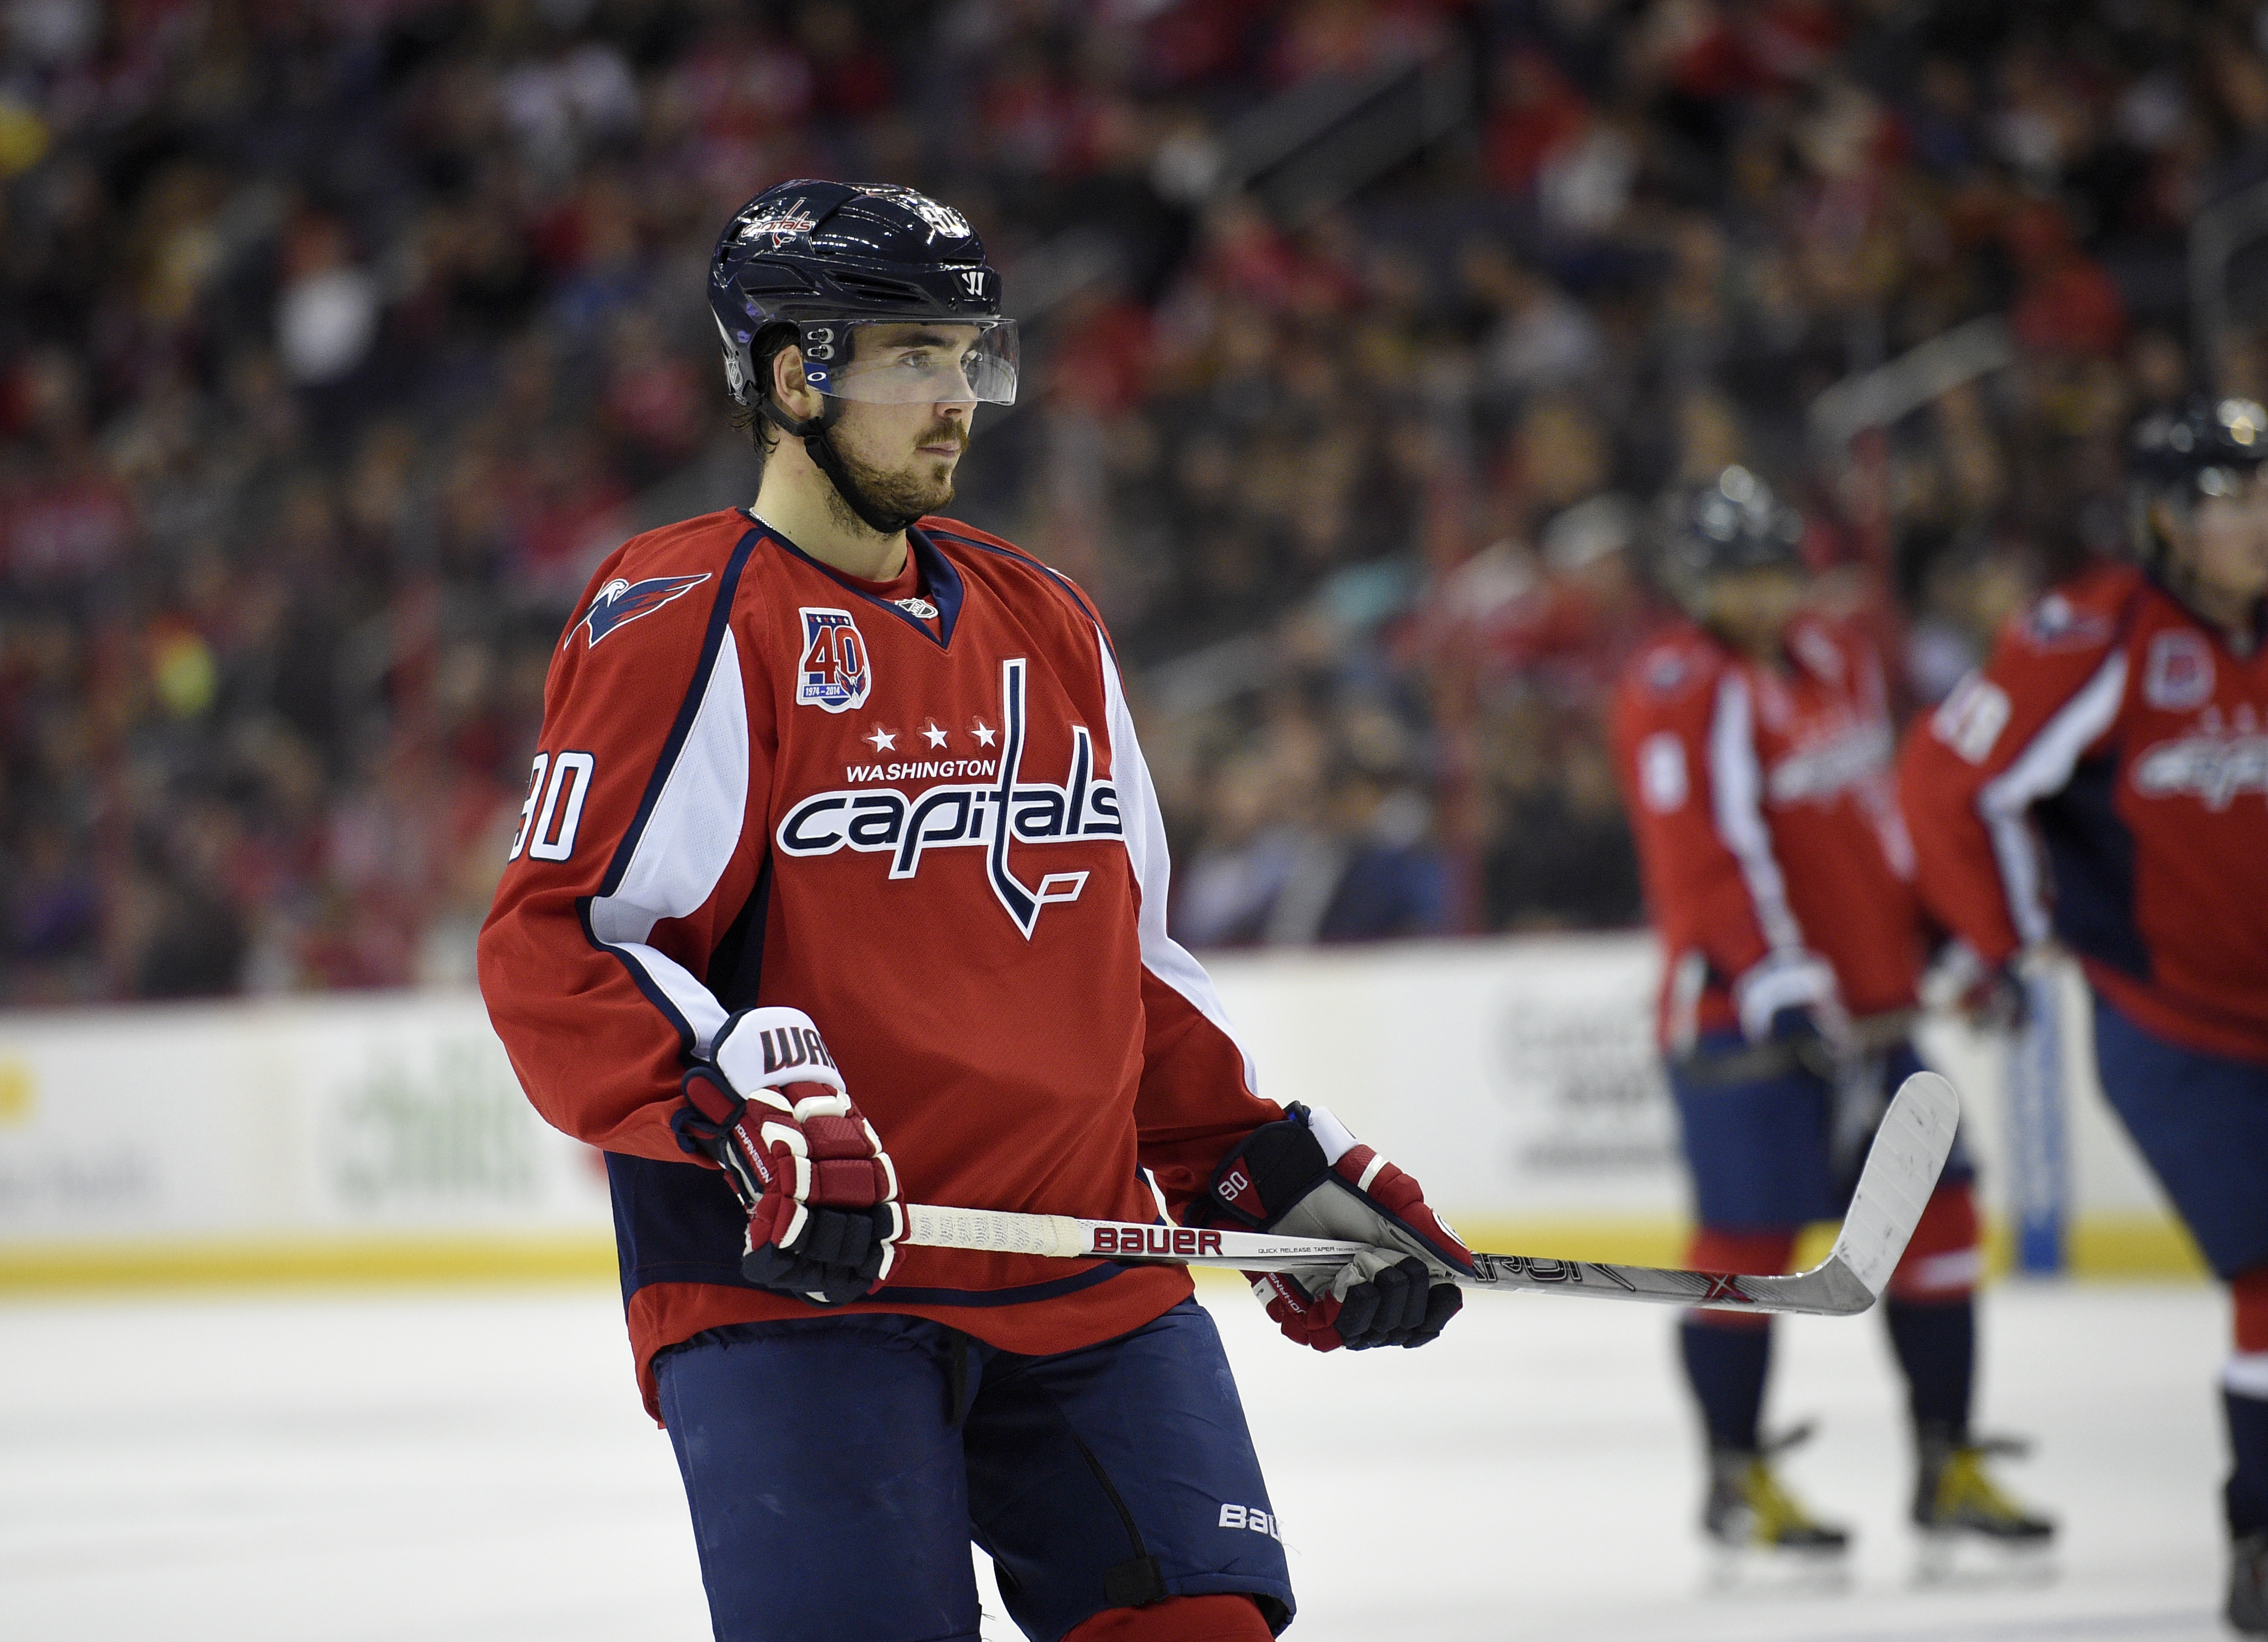 Washington Capitals left wing Marcus Johansson (90), of Sweden, looks on during the first period of an NHL hockey game against the Colorado Avalanche, Monday, Jan. 12, 2015, in Washington. (AP Photo/Nick Wass)